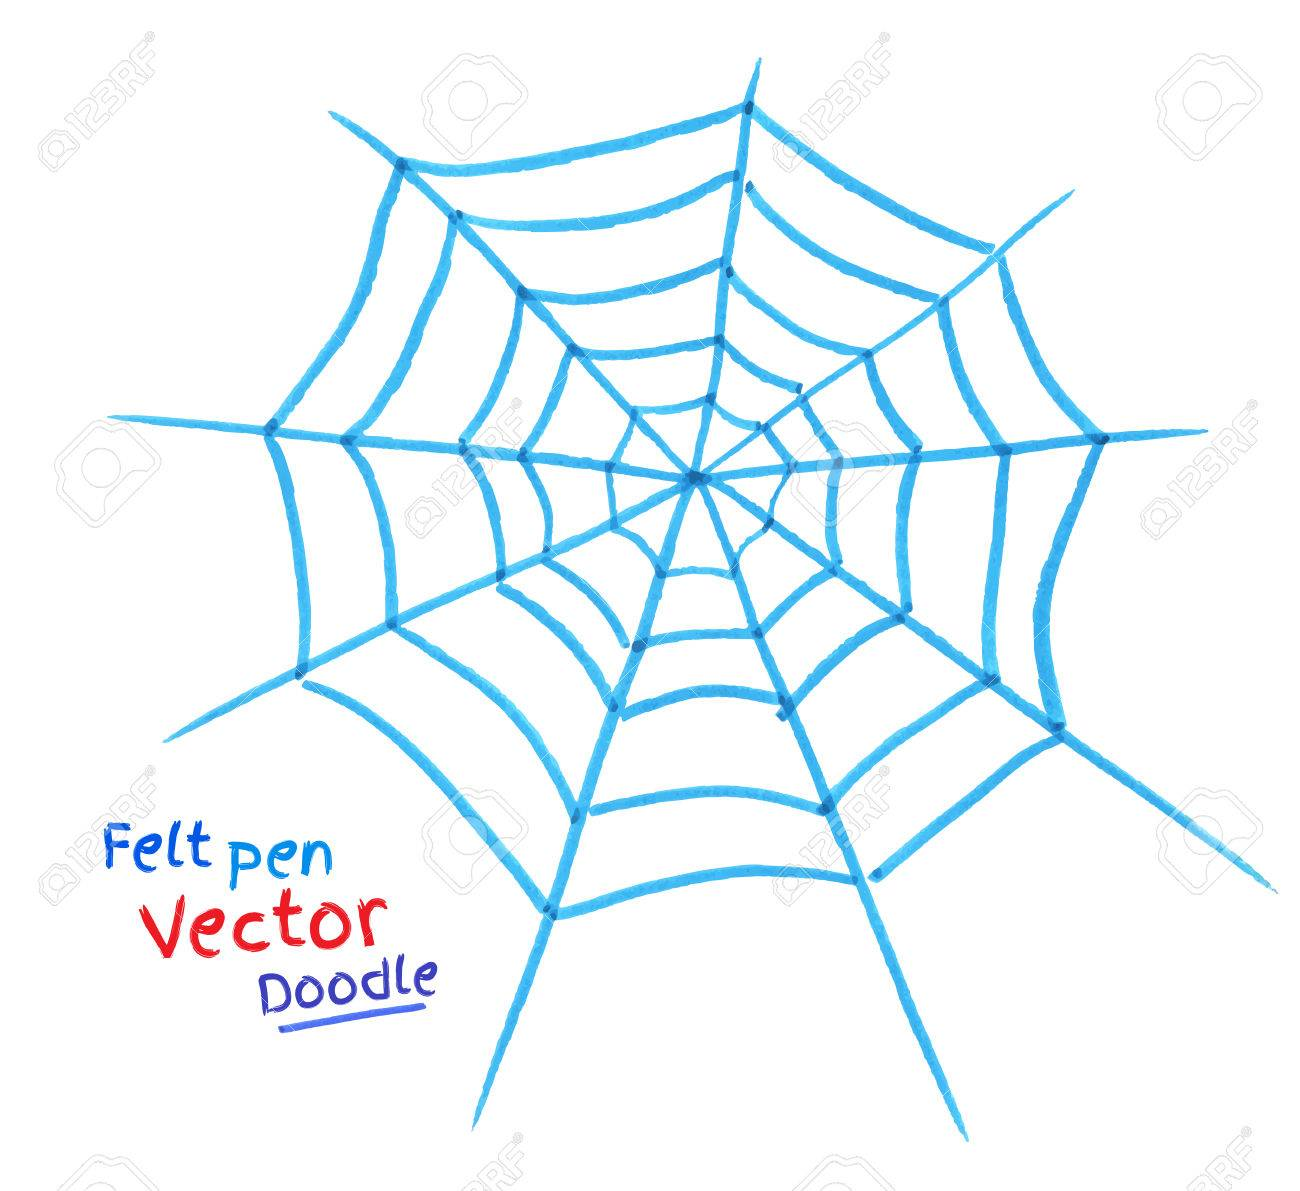 Spider Web Drawing at GetDrawings.com | Free for personal use Spider ...